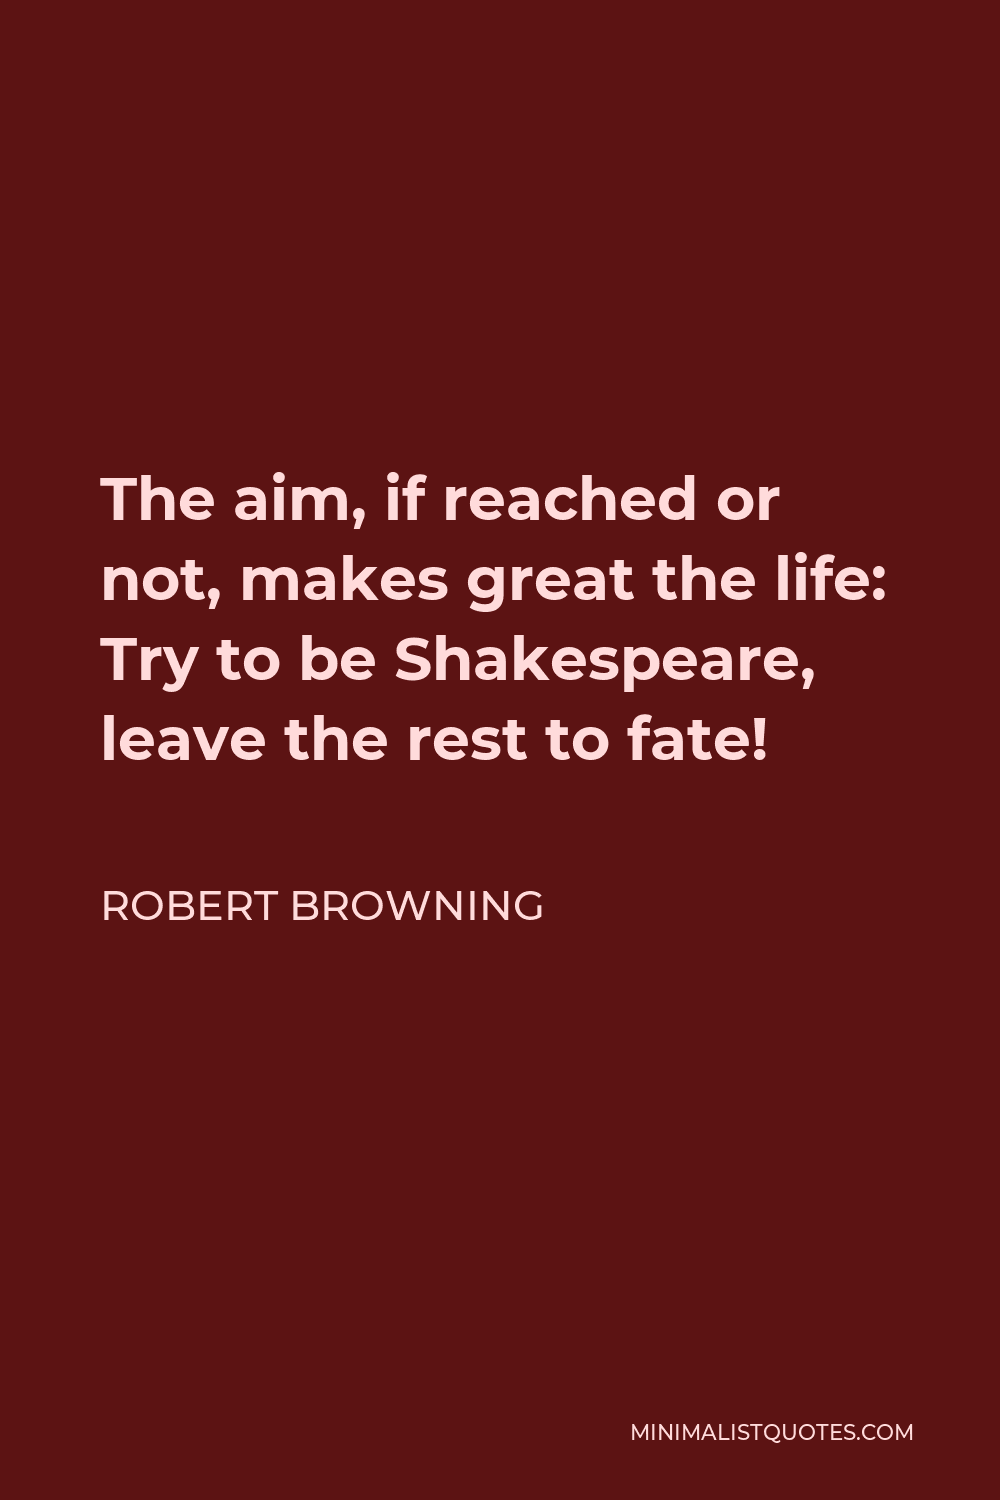 Robert Browning Quote - The aim, if reached or not, makes great the life: Try to be Shakespeare, leave the rest to fate!